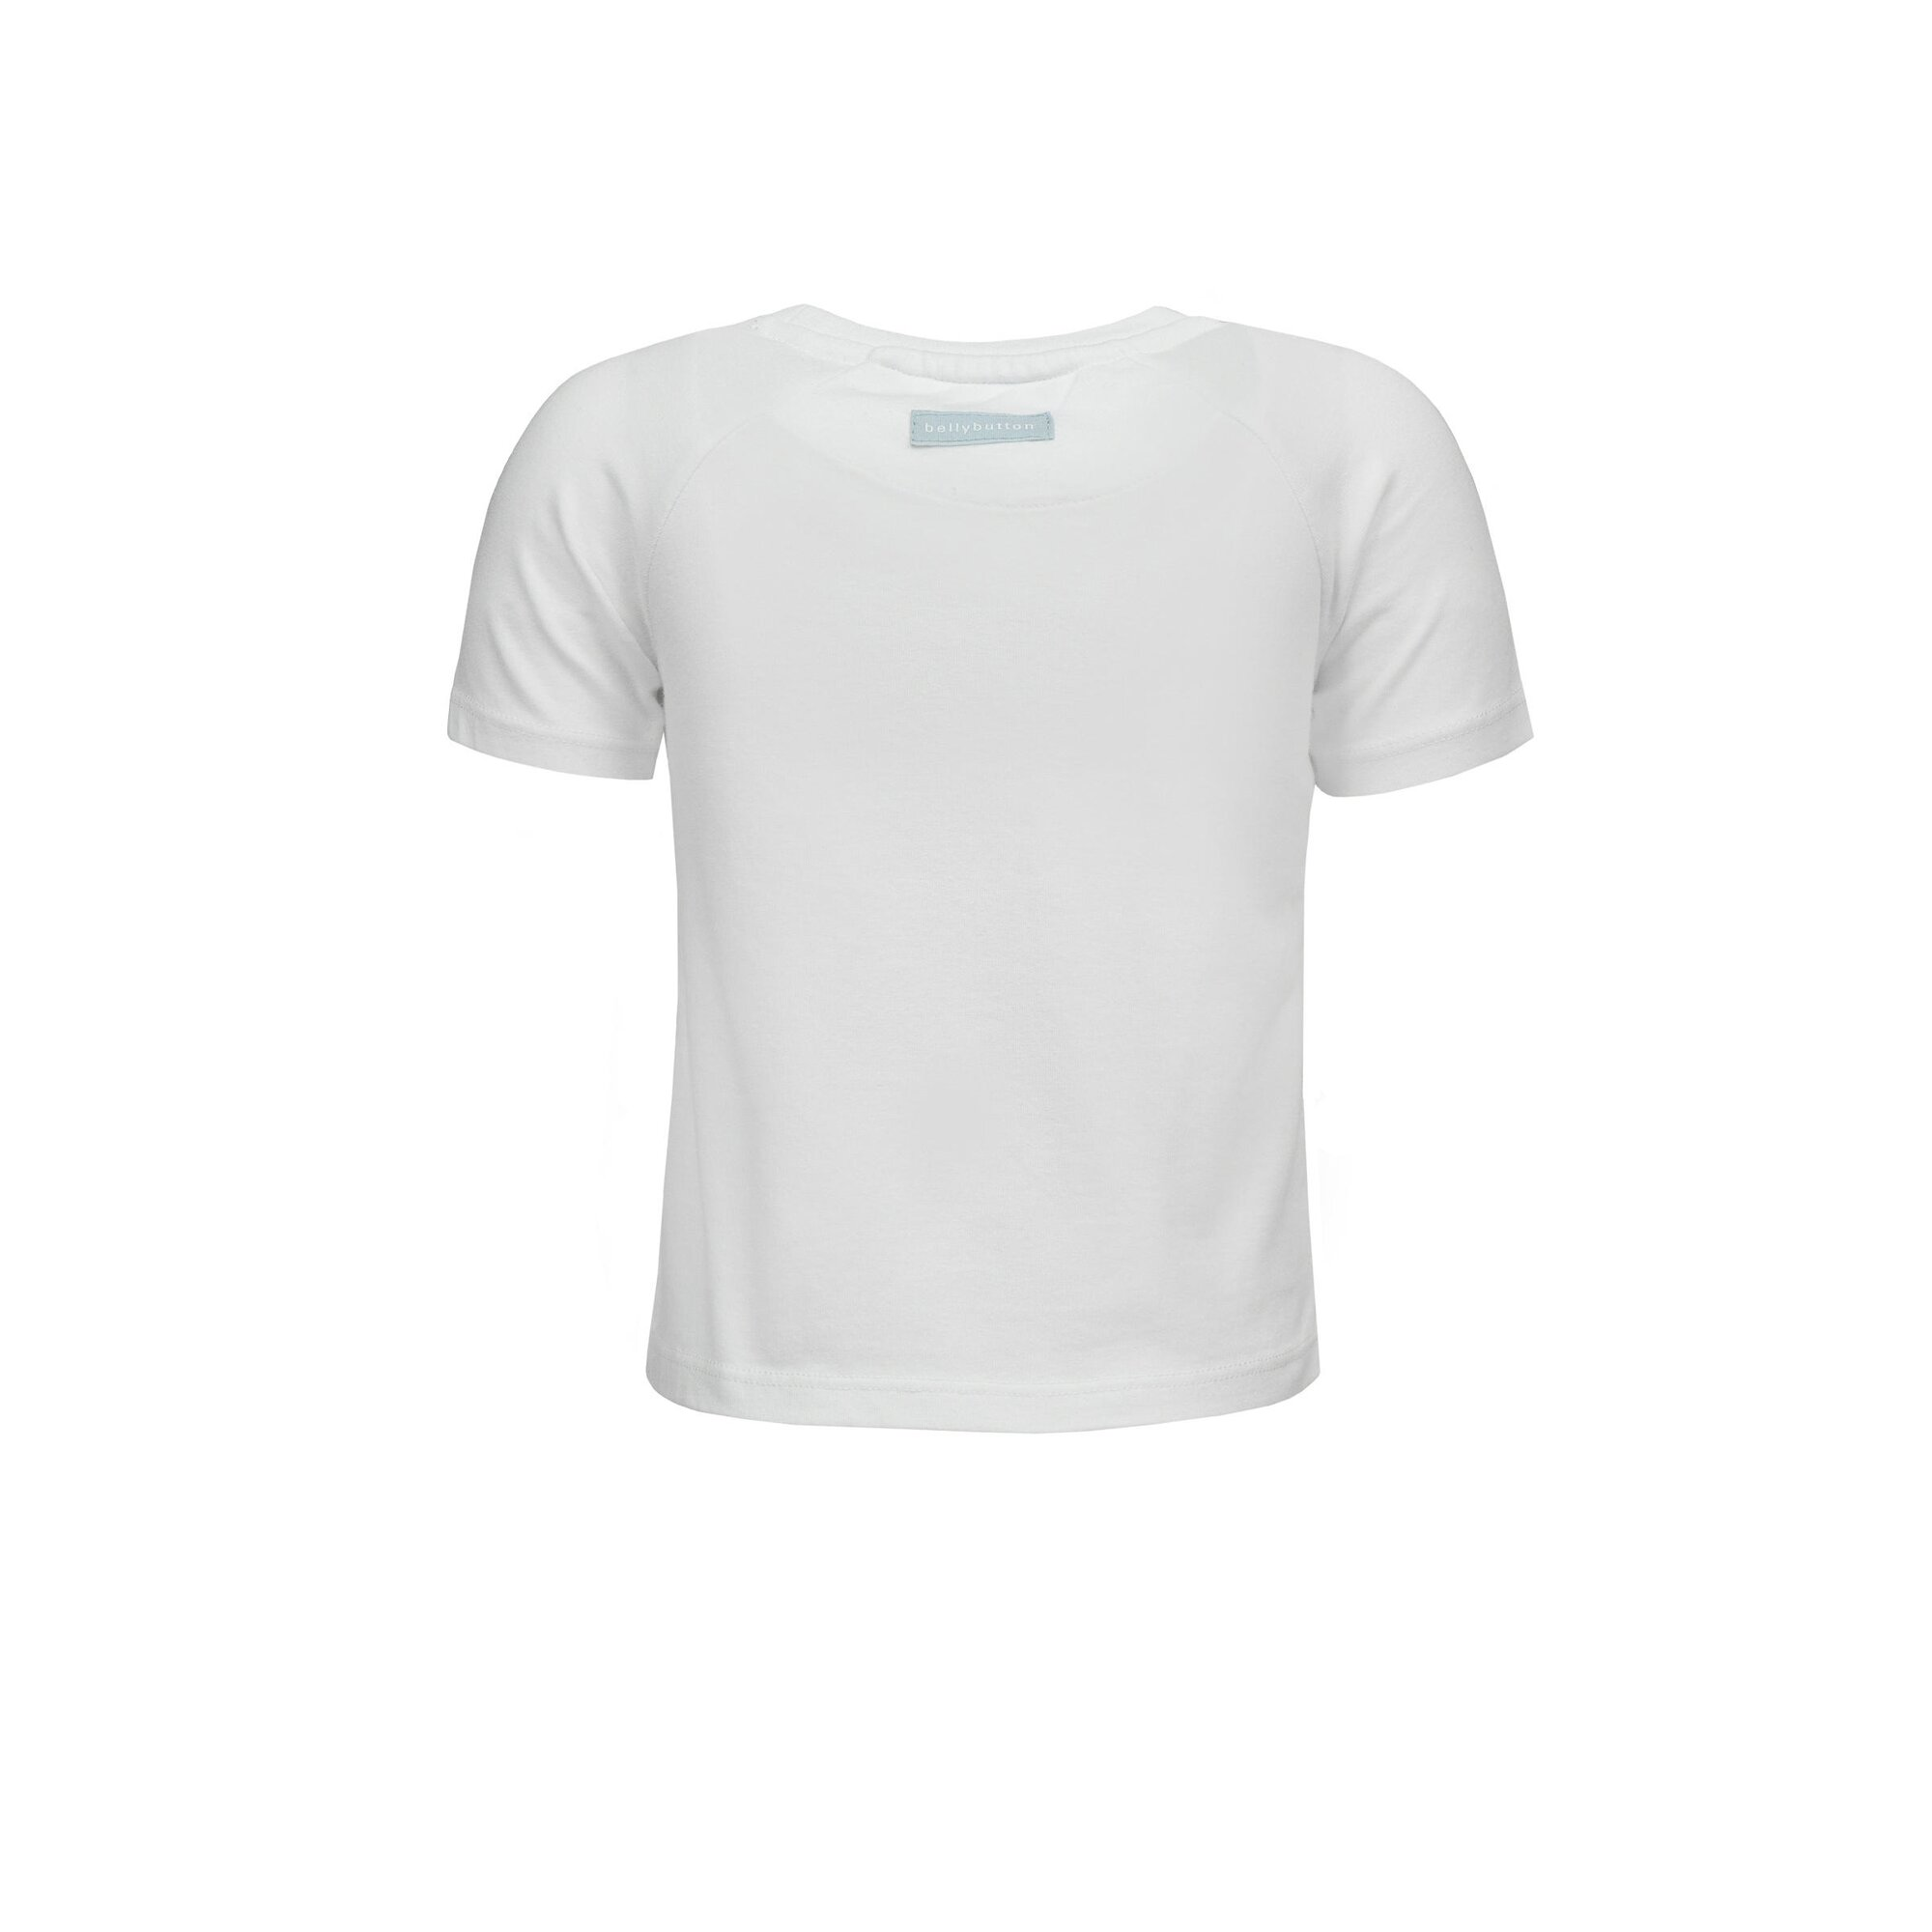 bellybutton-t-shirt